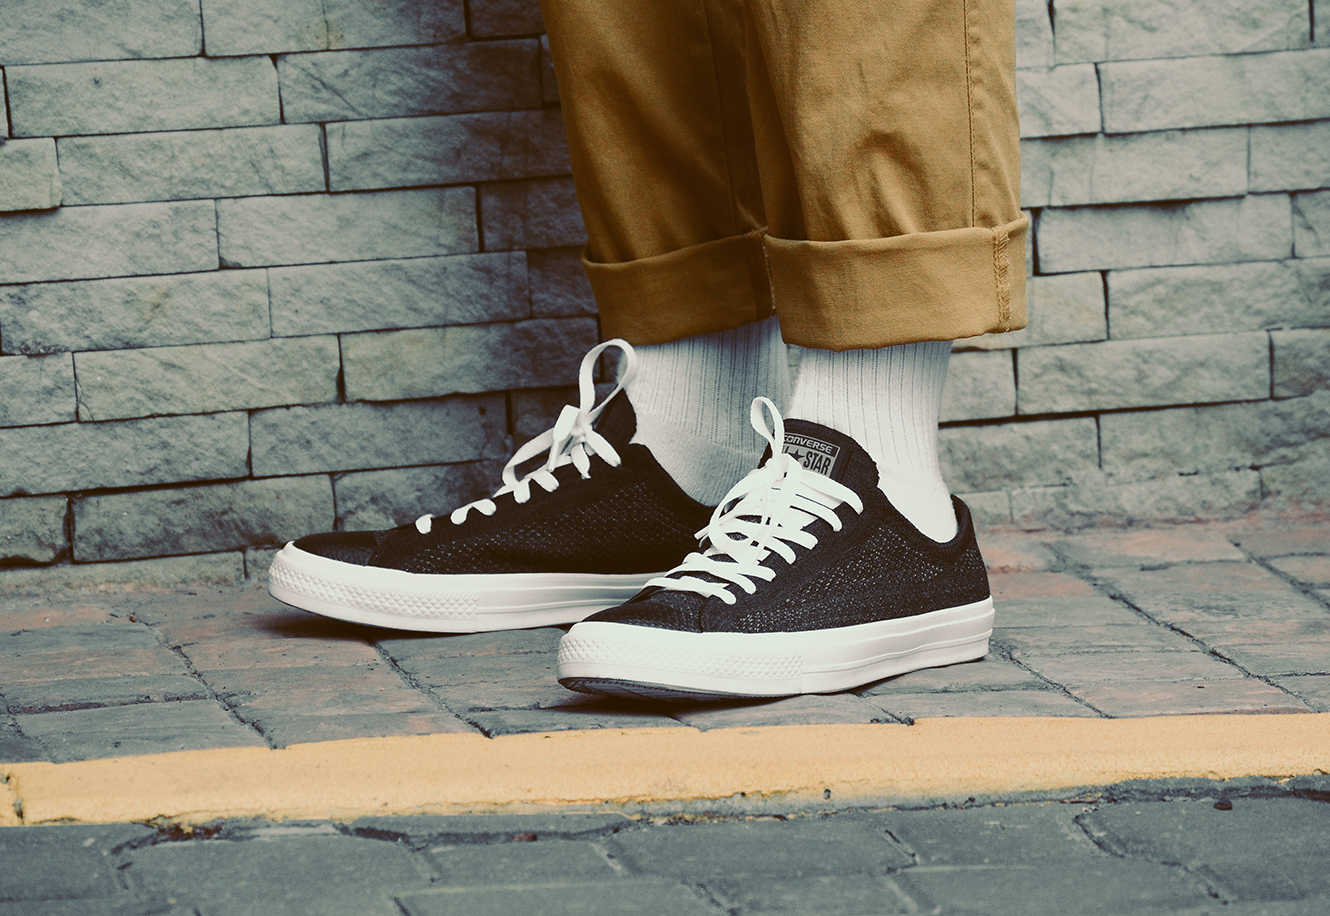 45a4d8b442e8 Take a look at the new Converse Chuck Taylor All Star X Nike Flyknit ...